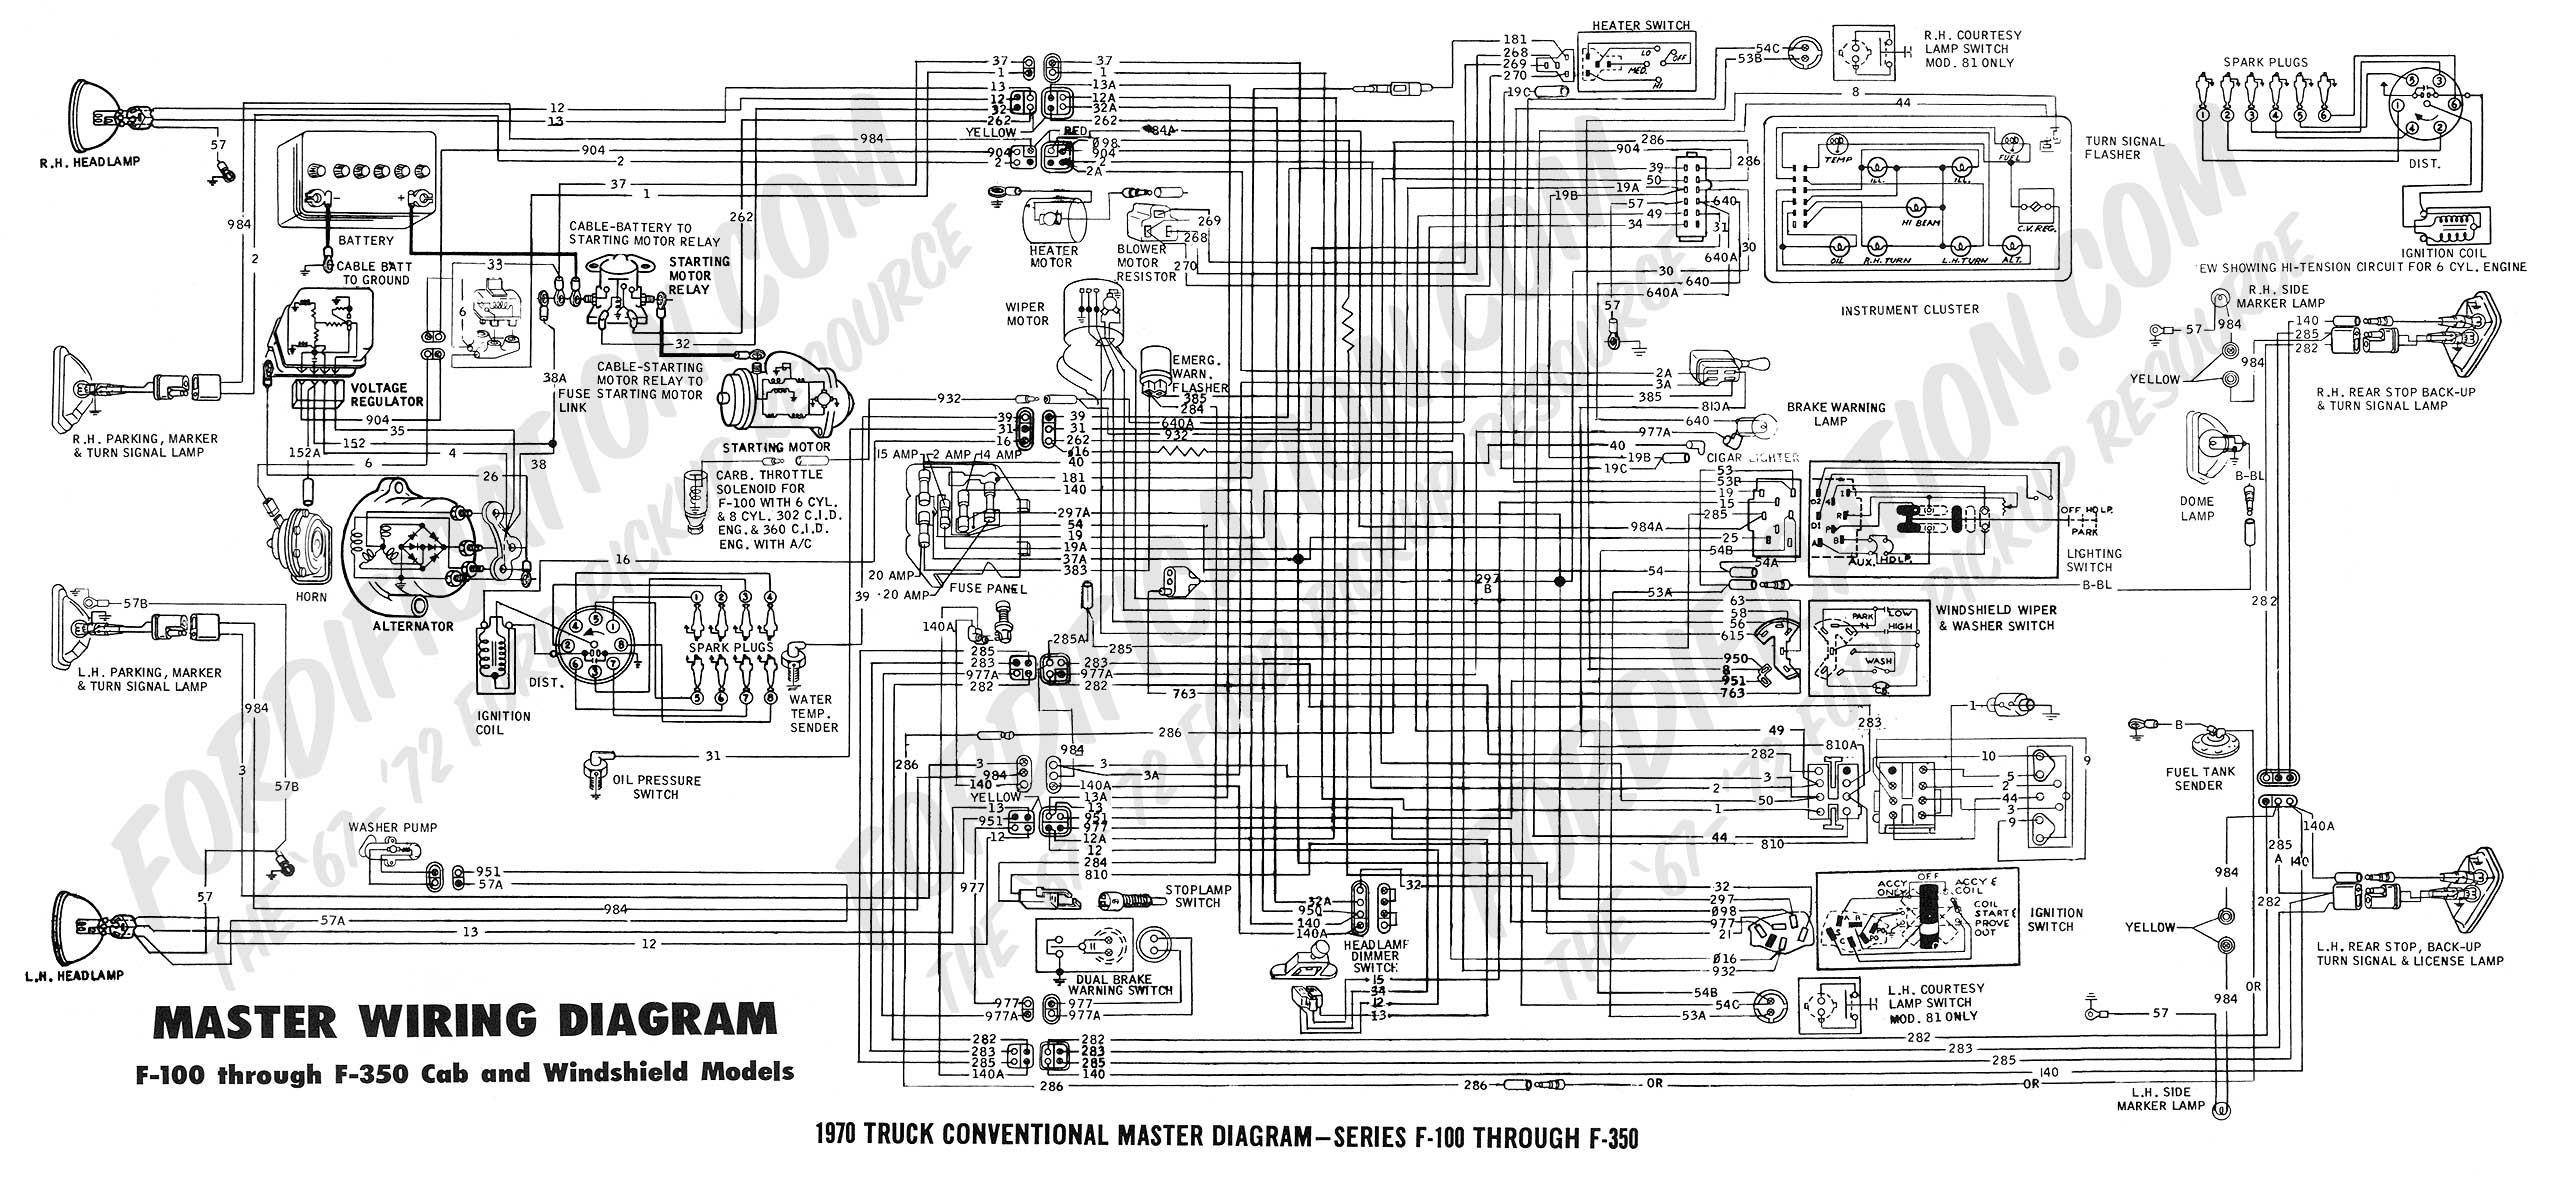 Peachy 5 0 Mustang Wiring Schematic Wiring Diagram Wiring Digital Resources Counpmognl